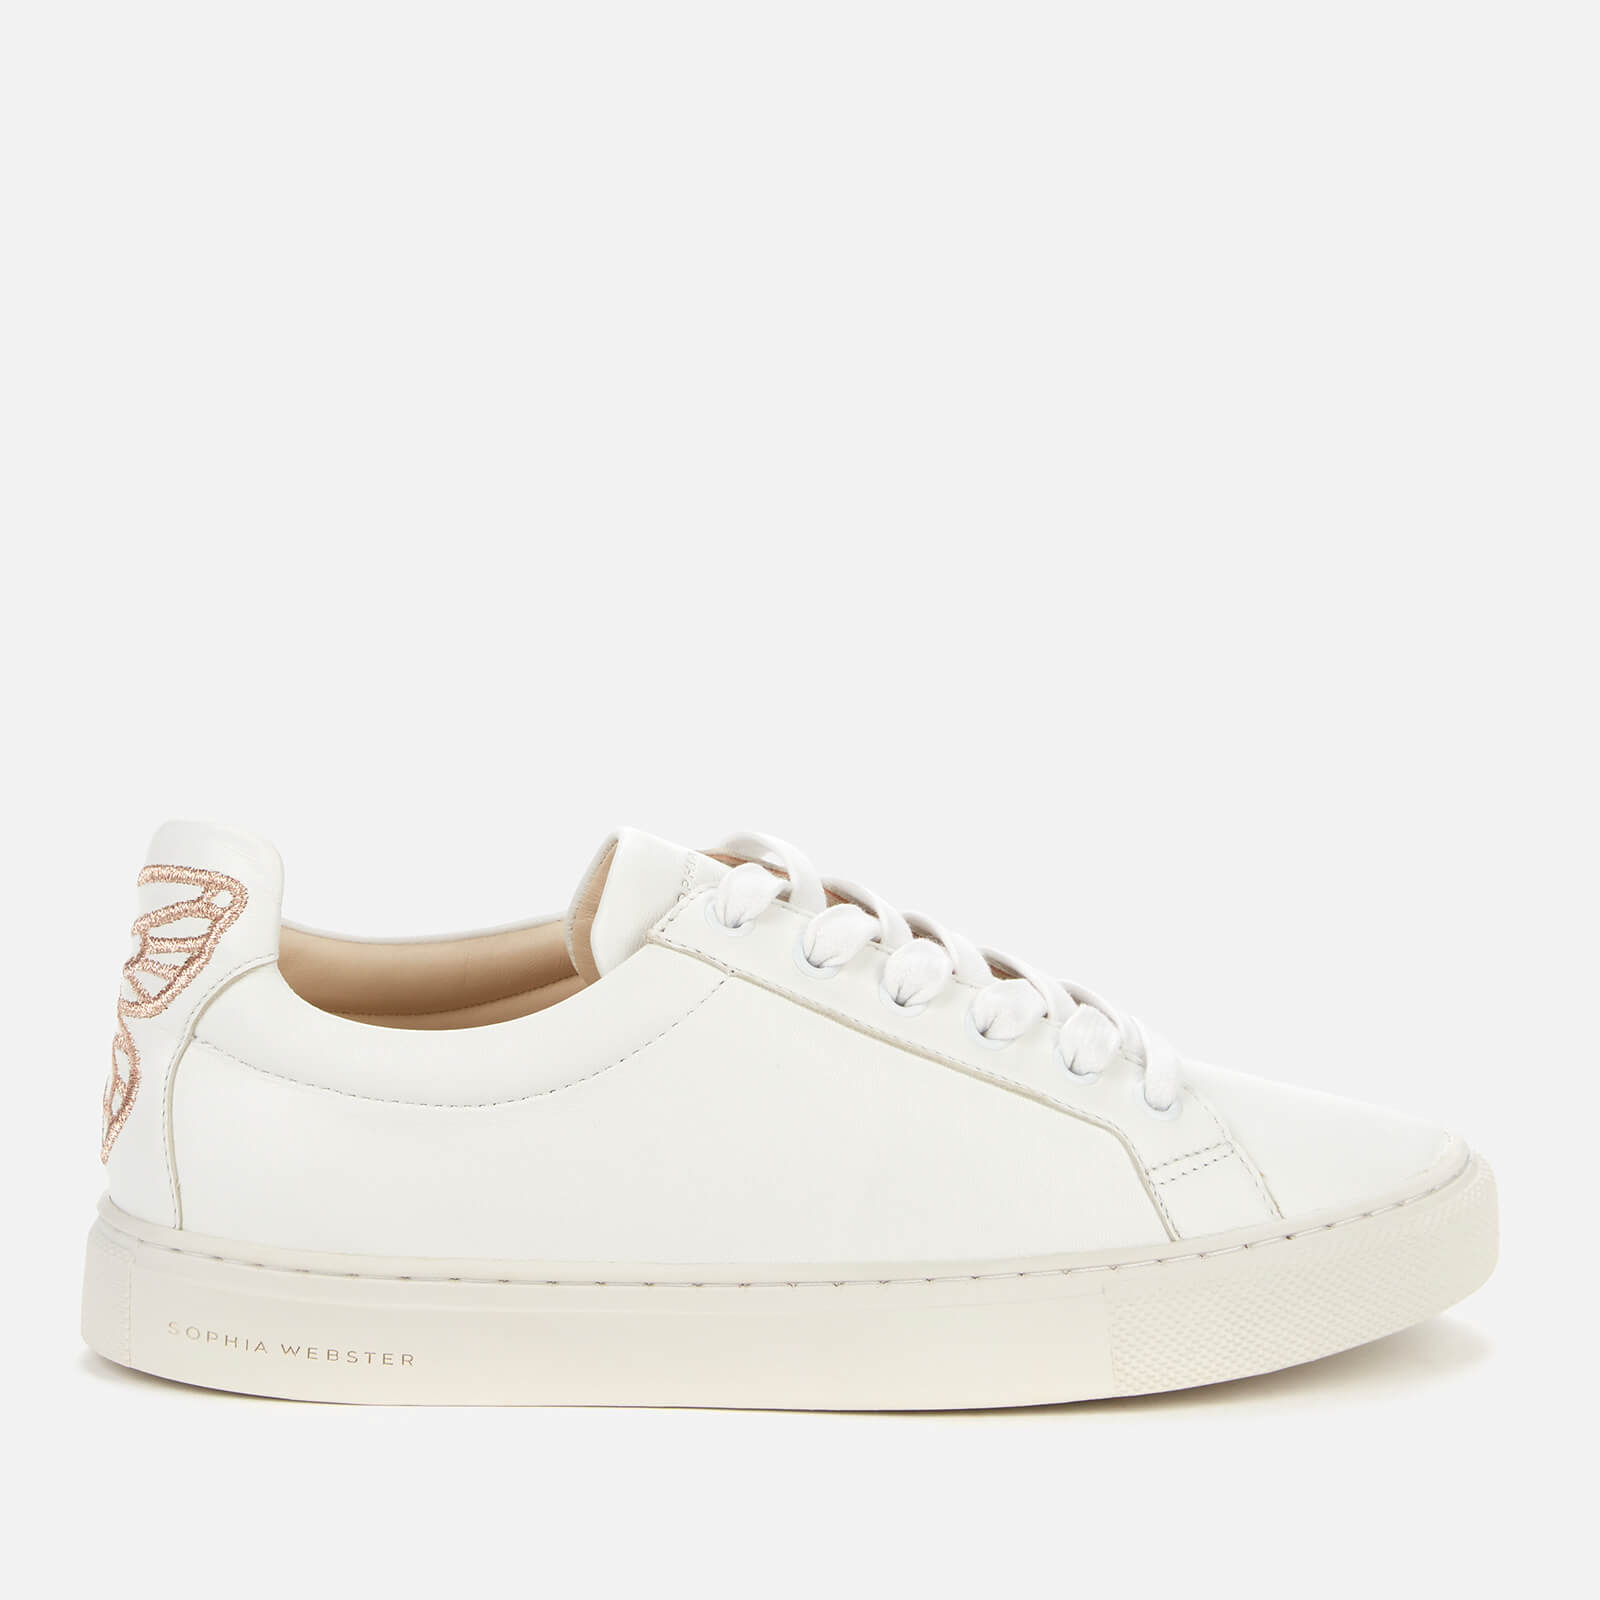 Sophia Webster Women's Butterfly Leather Trainers - White/Rose Gold - UK 5